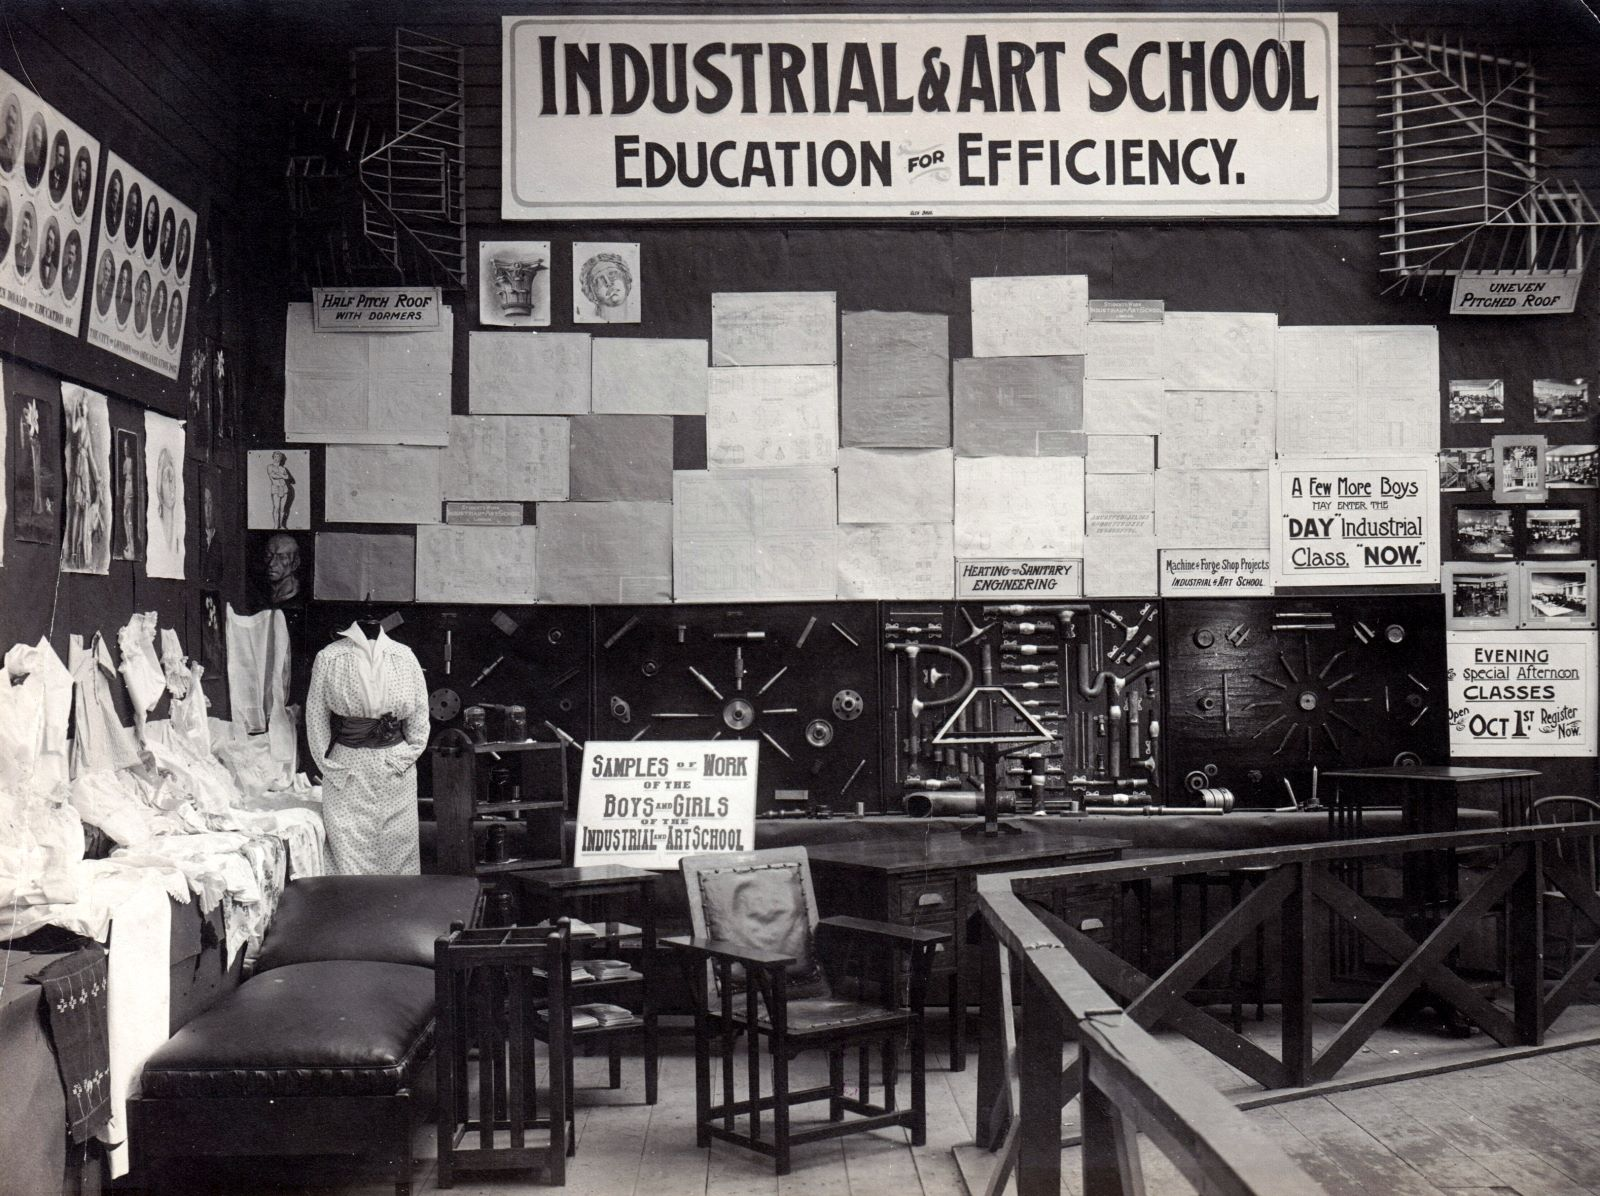 """A black and white photo of a classroom. A banner at the top of the room says """"Industrial and Art School Education For Efficiency."""